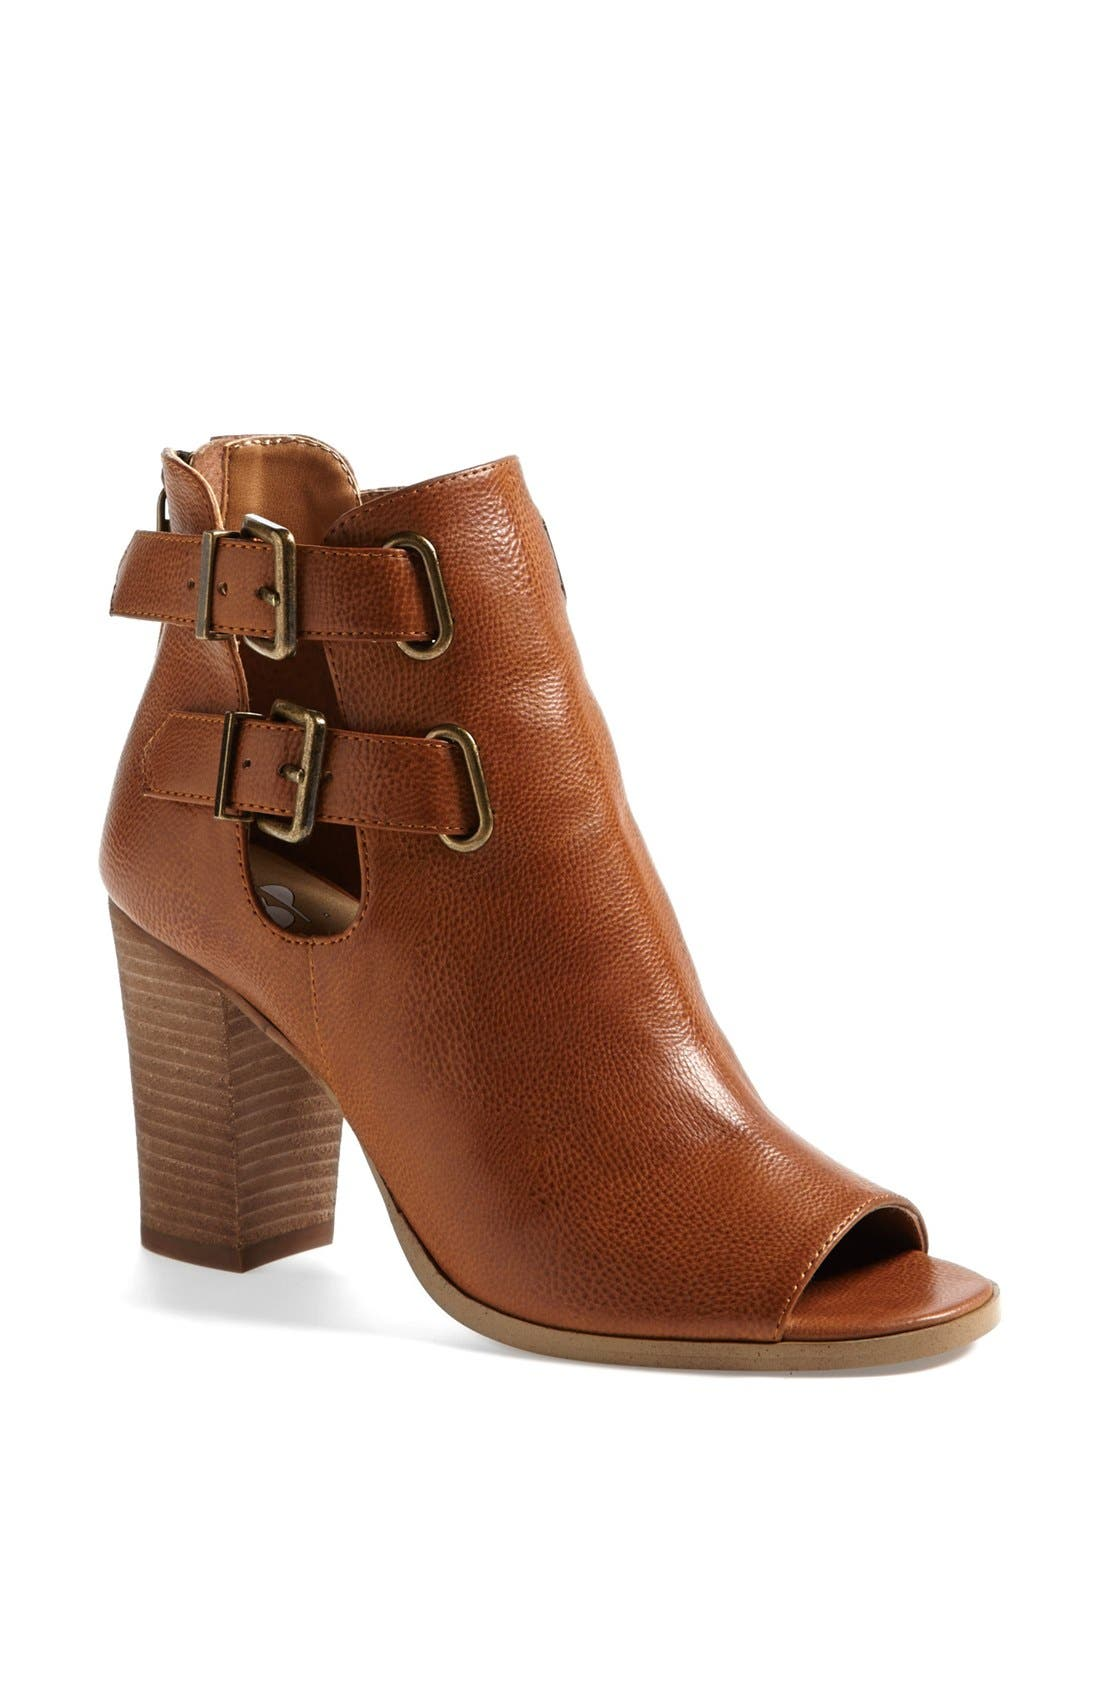 'Flexi' Bootie,                             Main thumbnail 1, color,                             Cognac